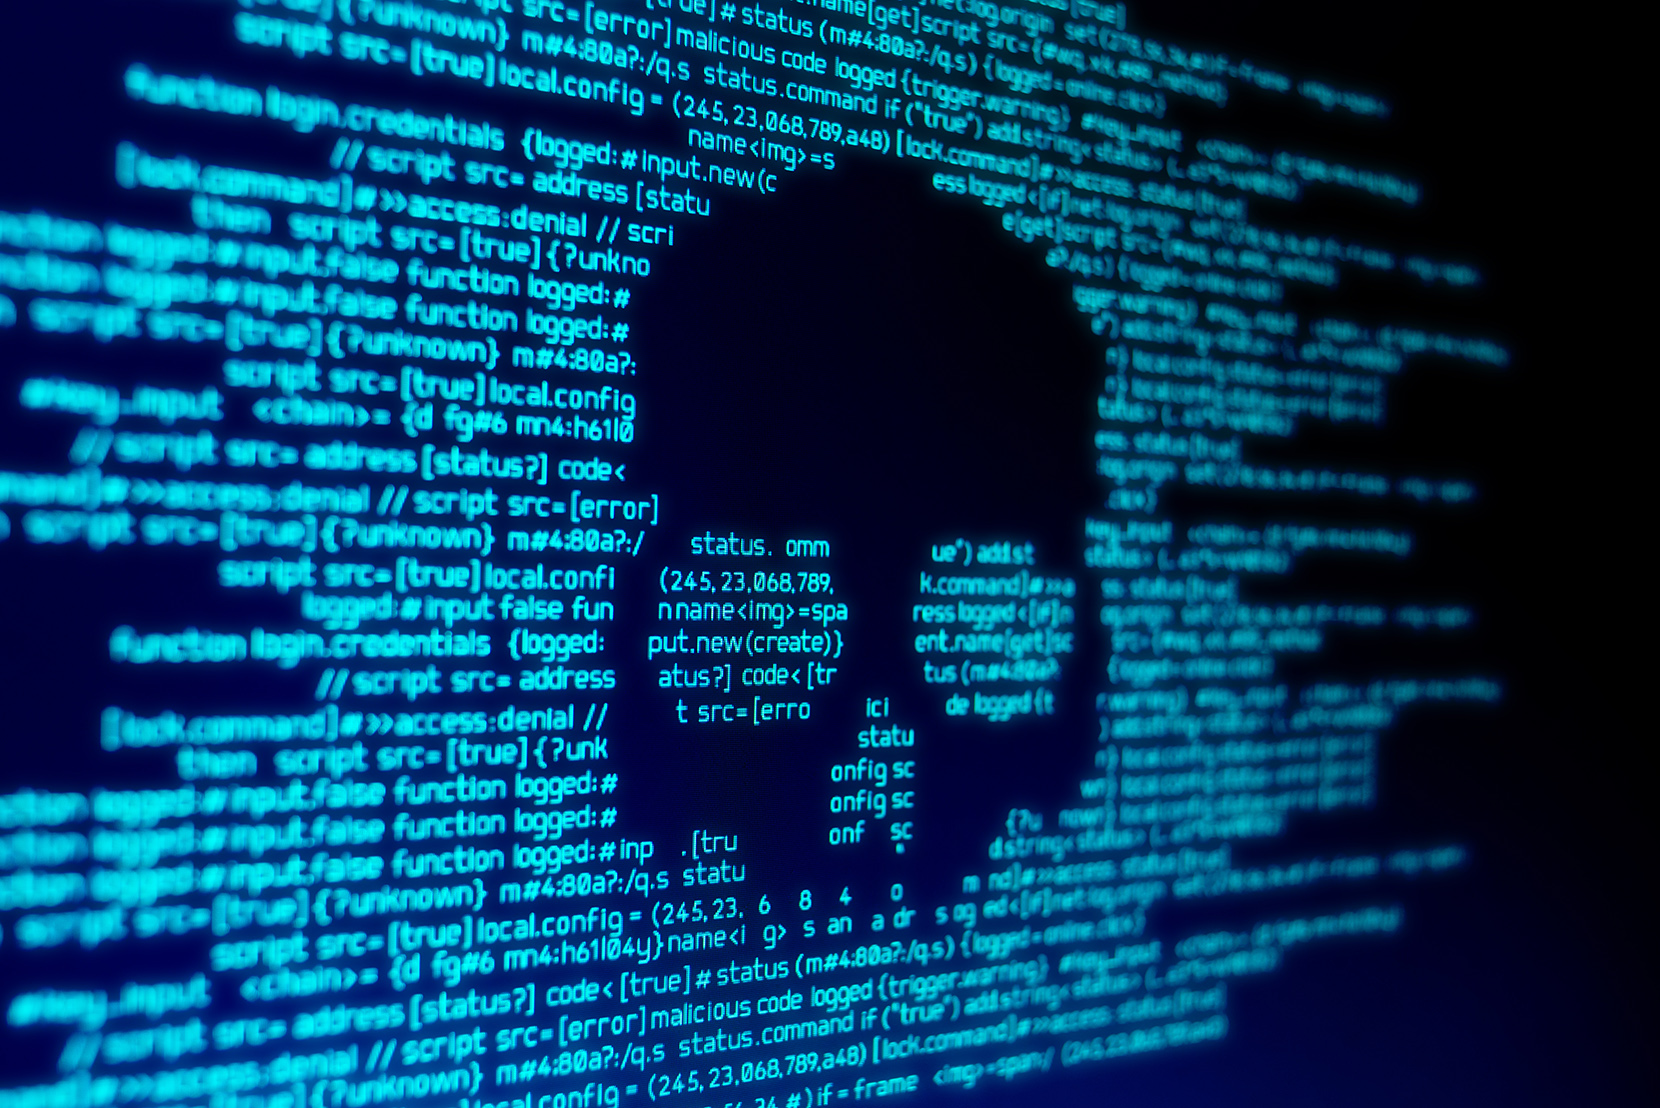 Blue computer code on a screen screen with a skull in black representing a malware attack.